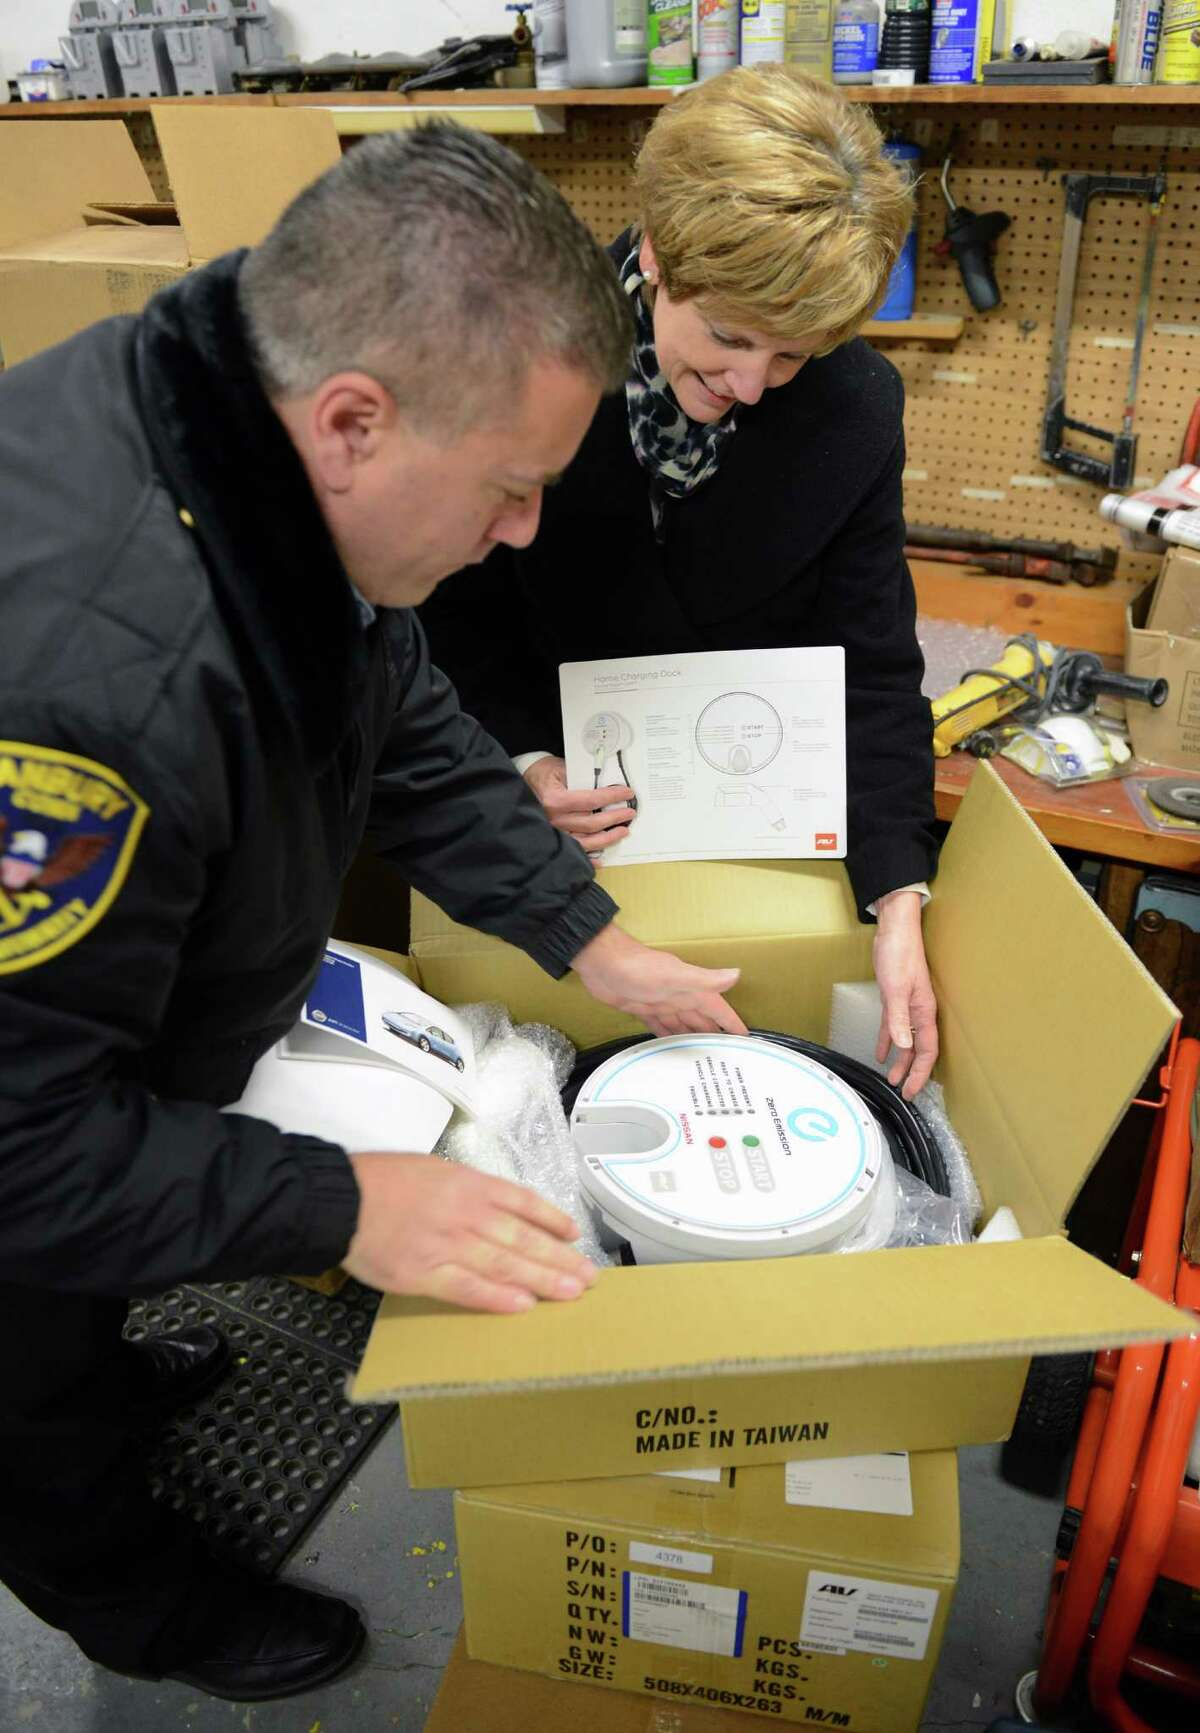 Danbury Parking Authority Enforcement Office George Marasco and Danbury Parking Authority Director Debbie Pacific open up a package containing a new donated electric car charging station that will eventually be installed in the Patriot Garage in Danbury, Conn. on Tuesday, Dec. 10, 2013.